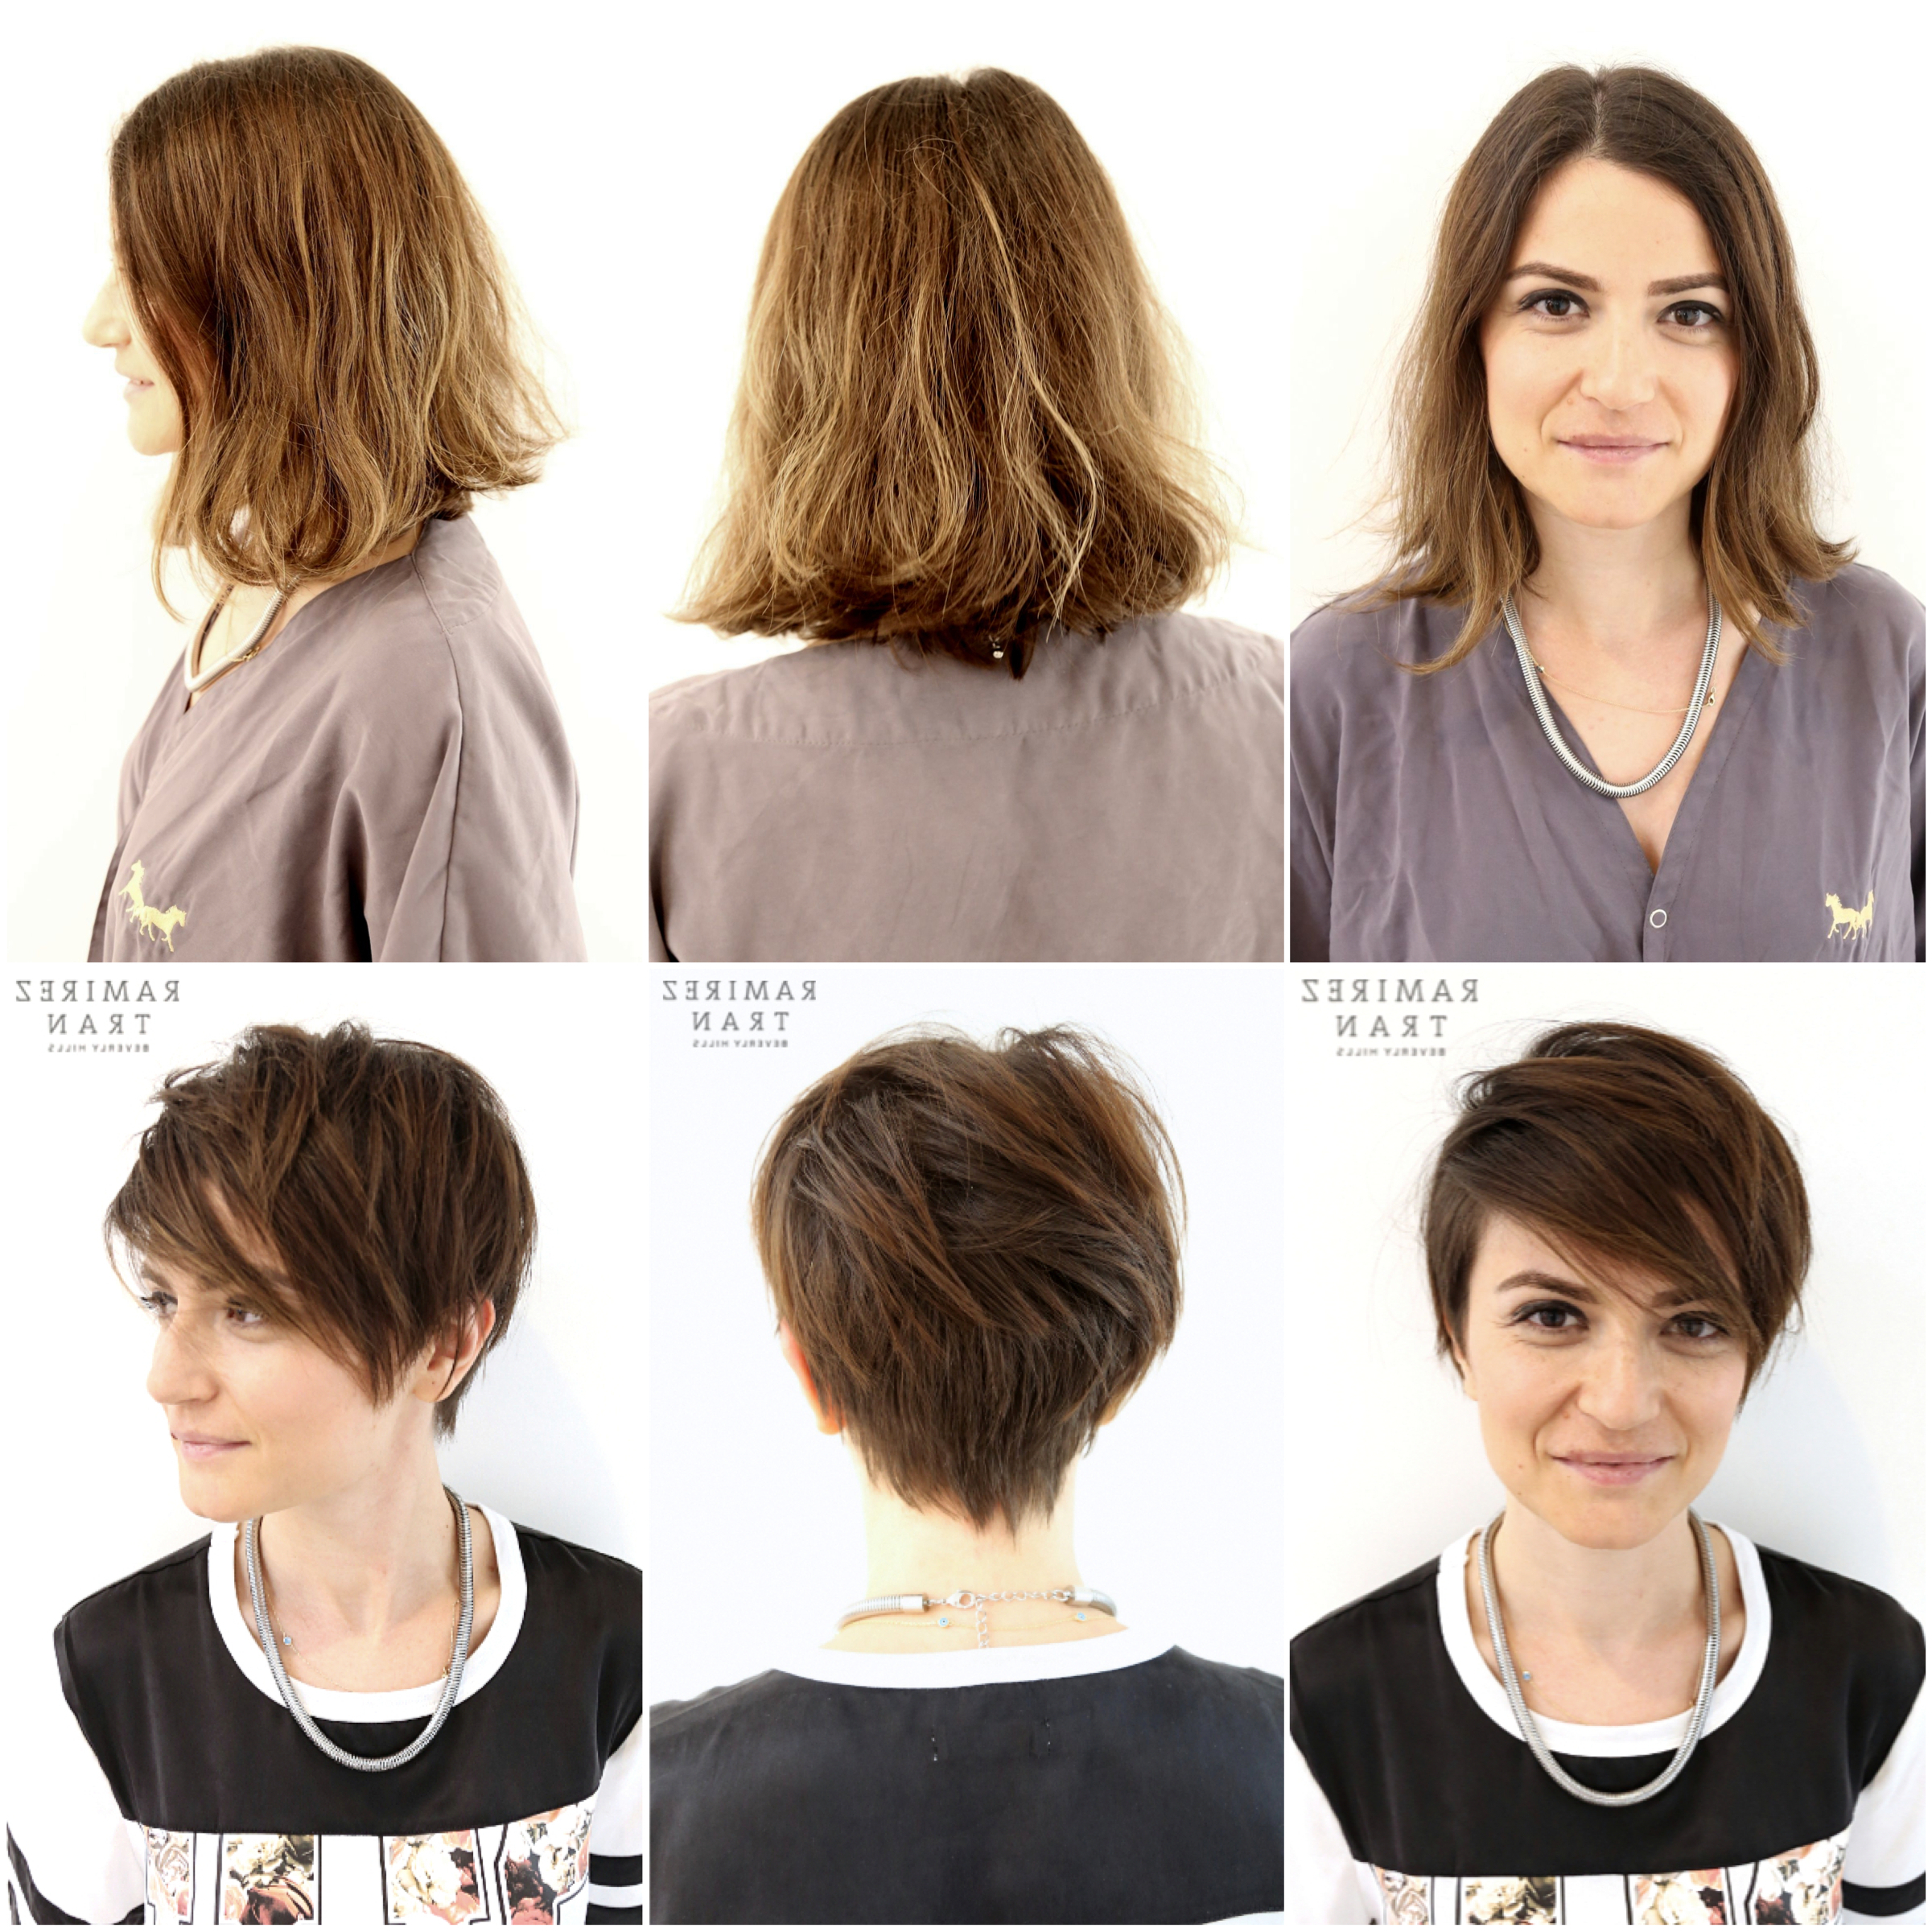 Chic & Modern Pixie Done @ The Salon In Miami – Ramirez | Tran Salon Regarding Short Hairstyles For Growing Out A Pixie Cut (View 12 of 25)